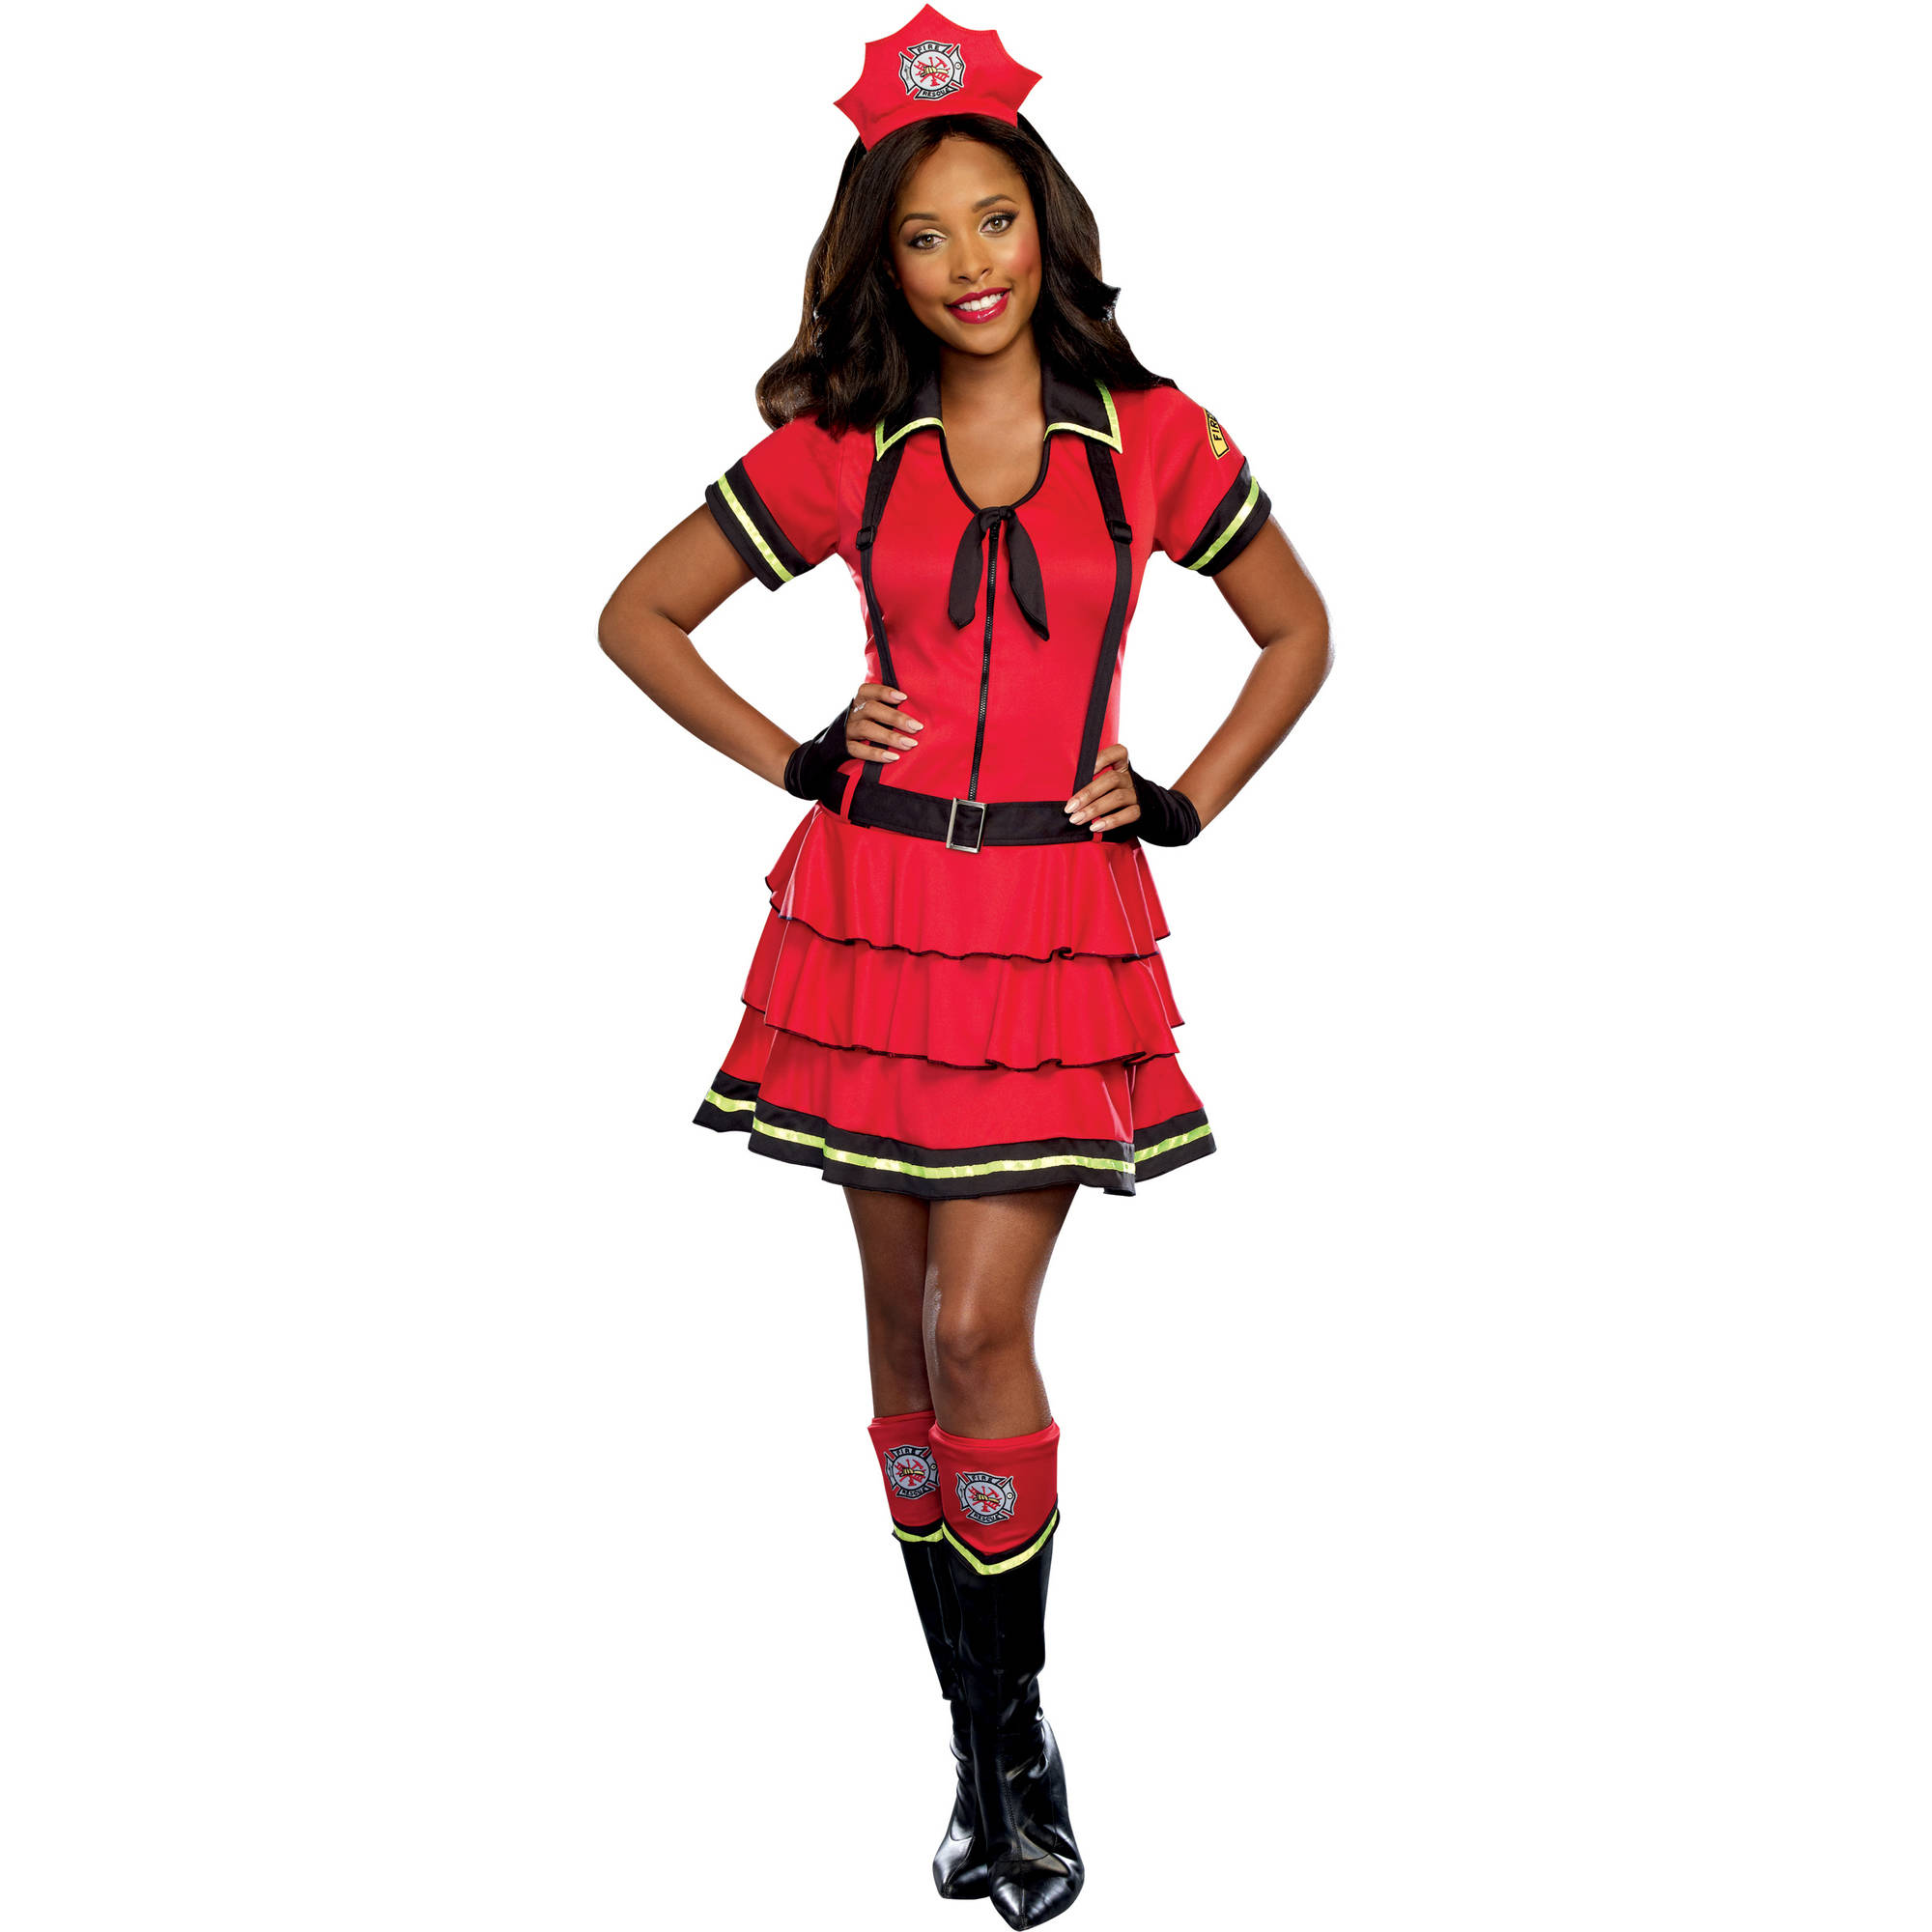 Fire Fighter Women's Halloween Costume